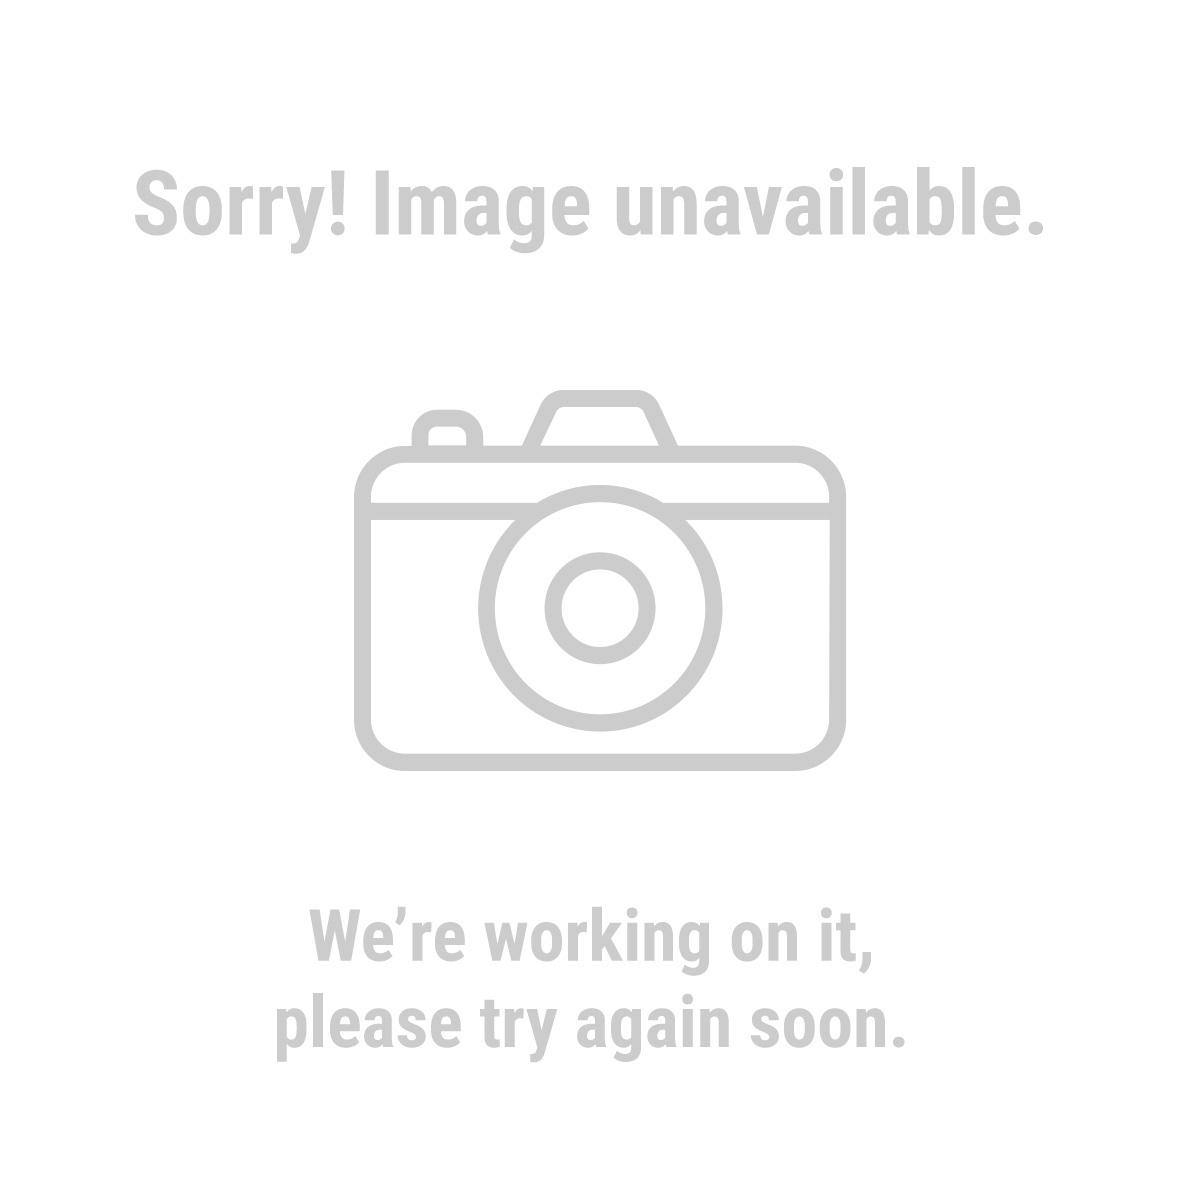 Chicago Electric Welding Systems 65939 Welding Cart - Red